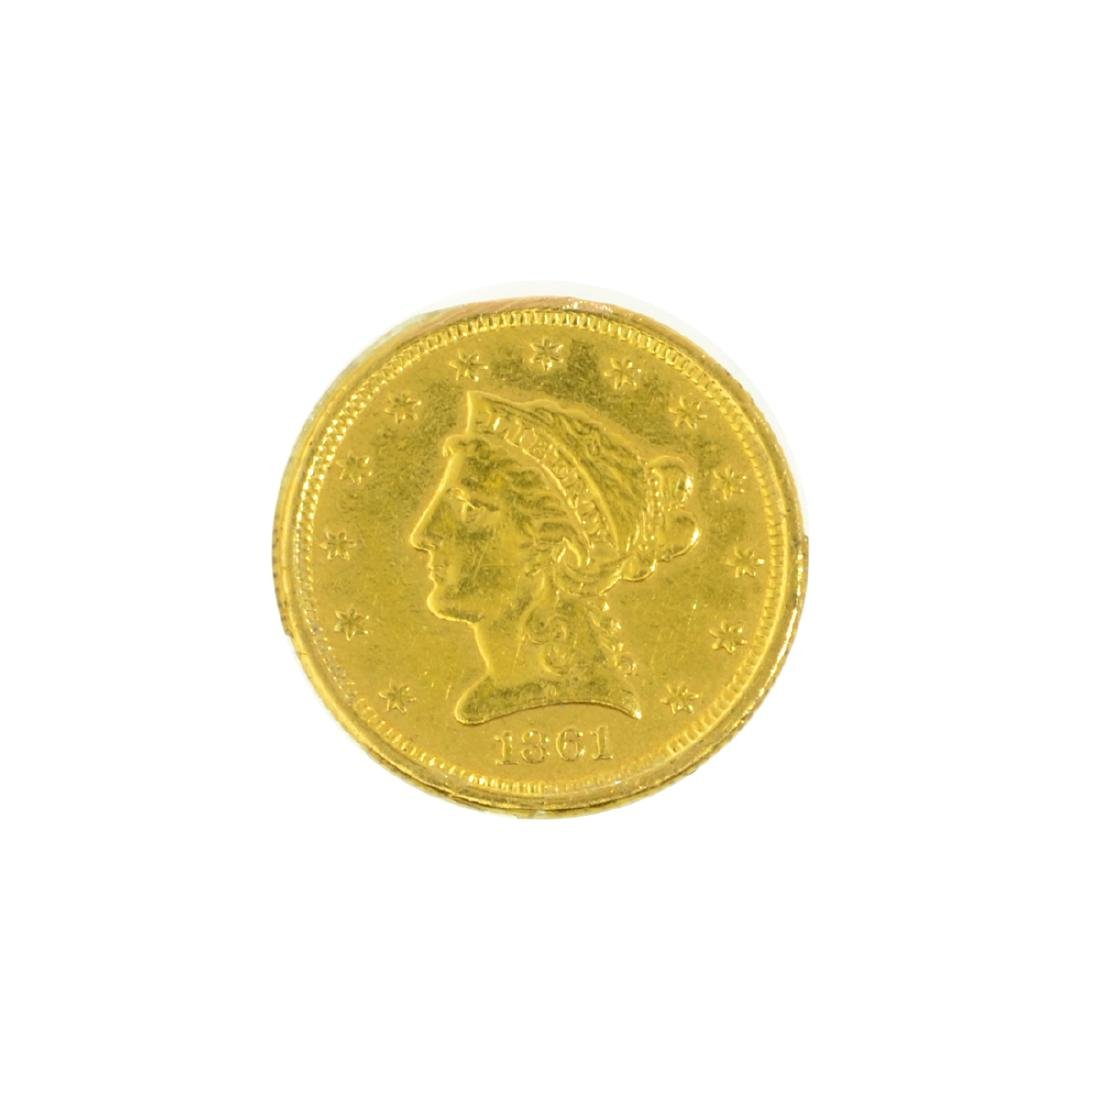 *1861 $2.50 U.S. Liberty Head Gold Coin (JG-MRT)